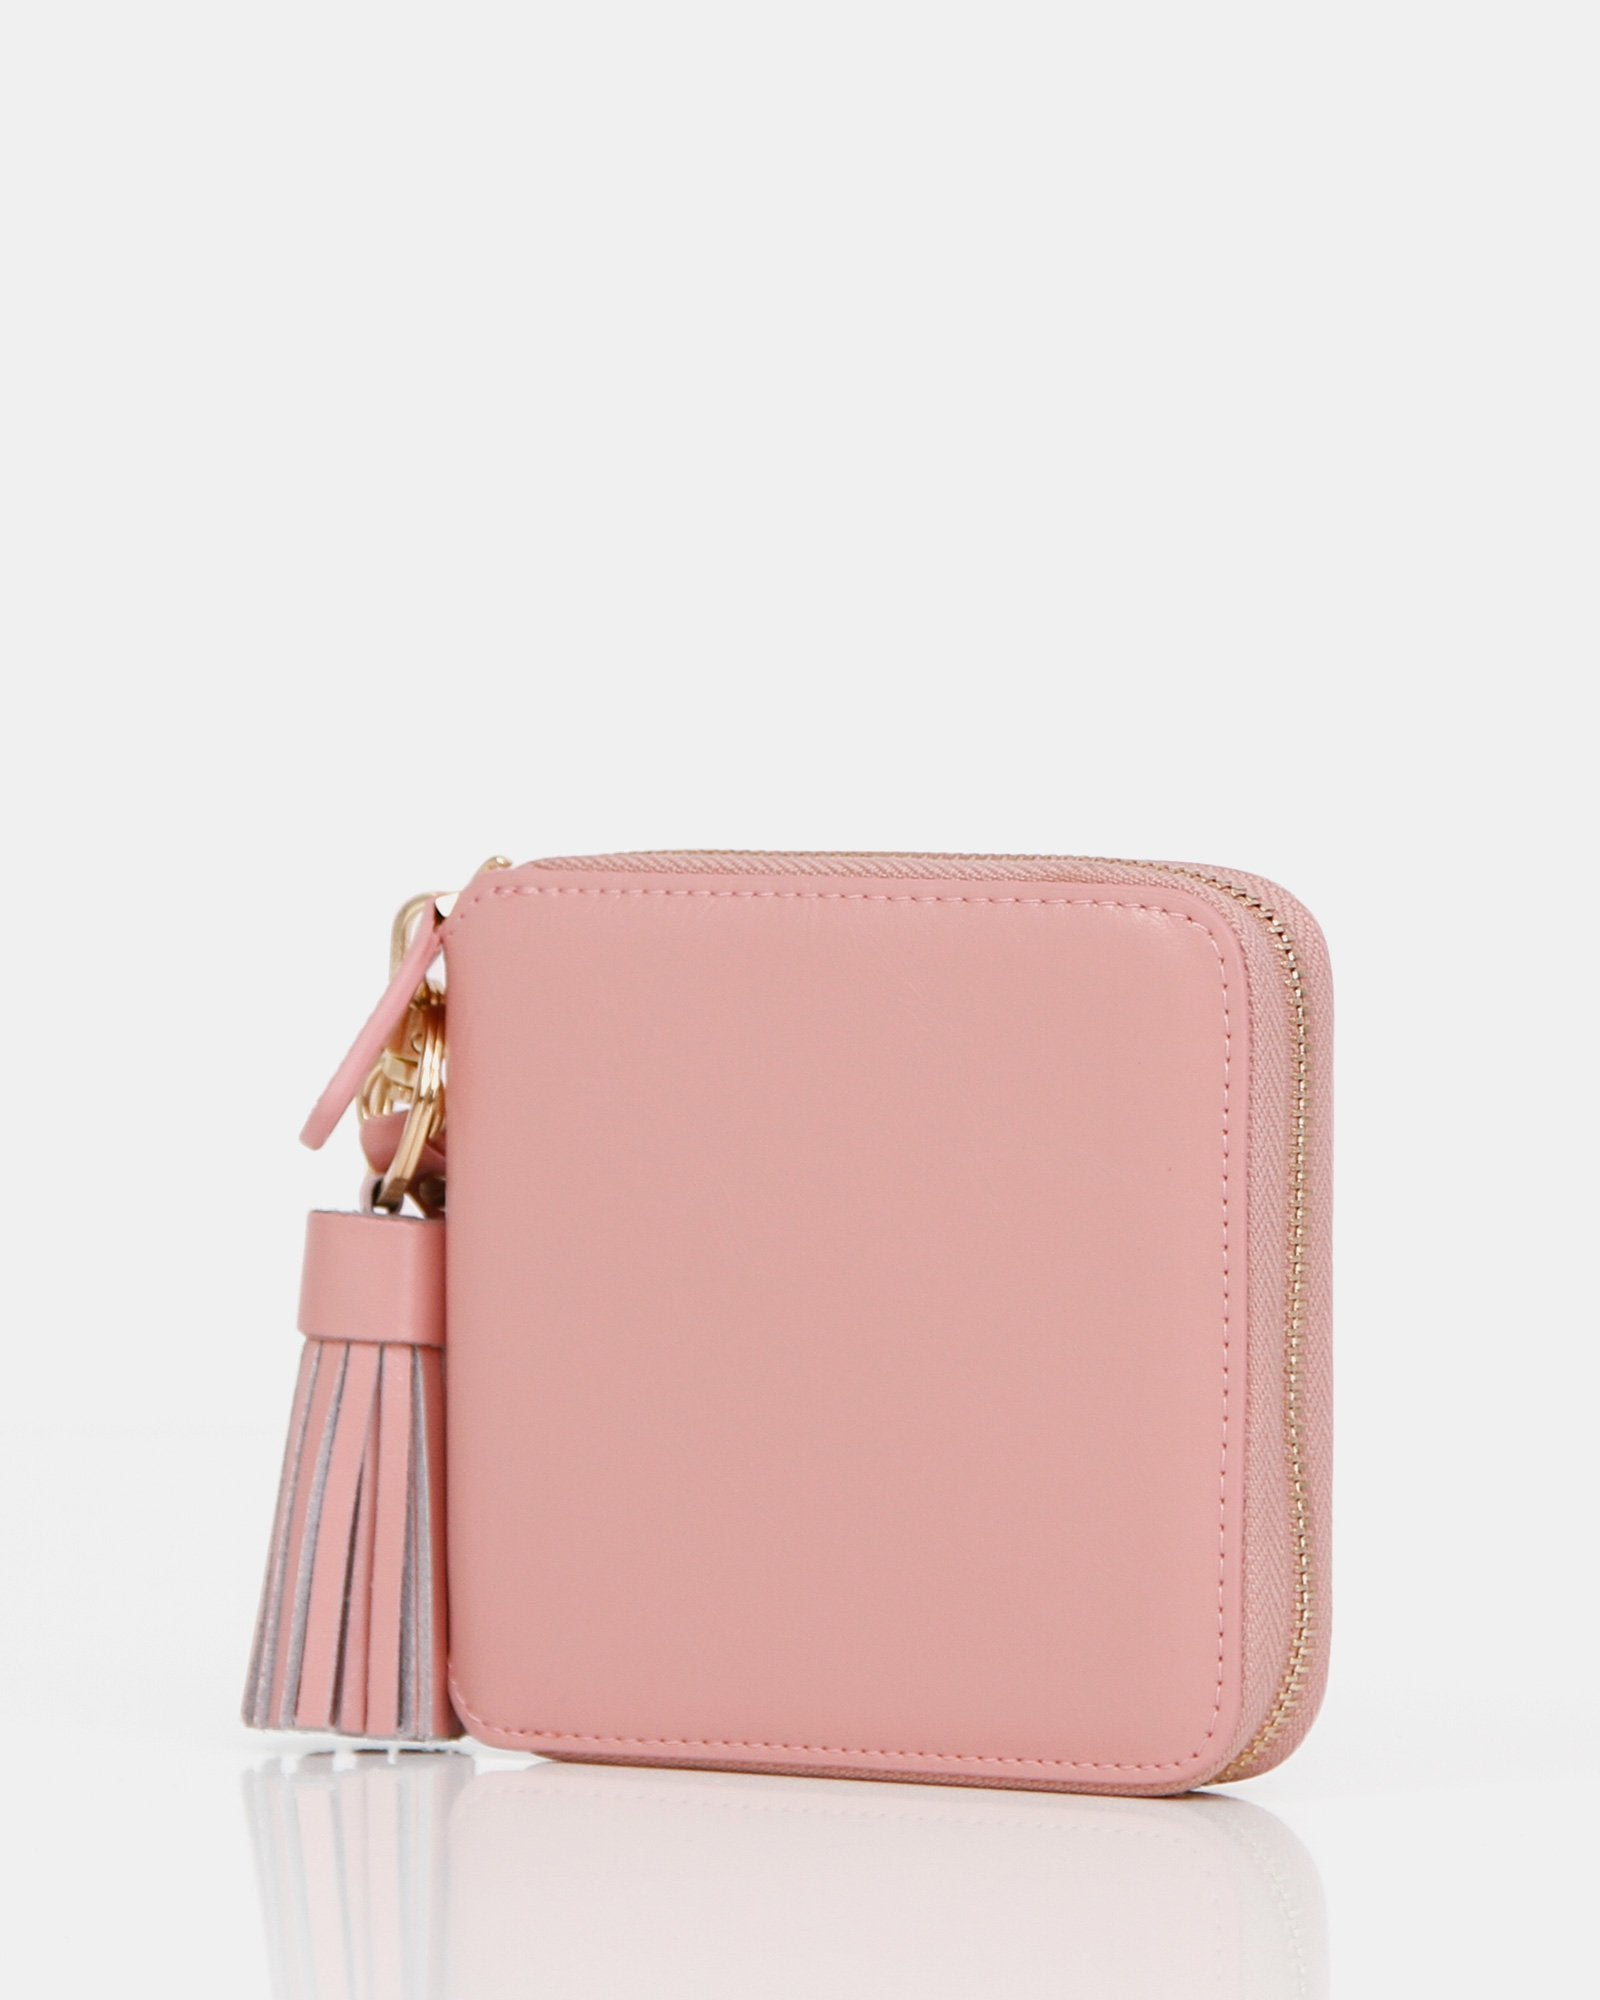 Nora Leather Wallet - Pink